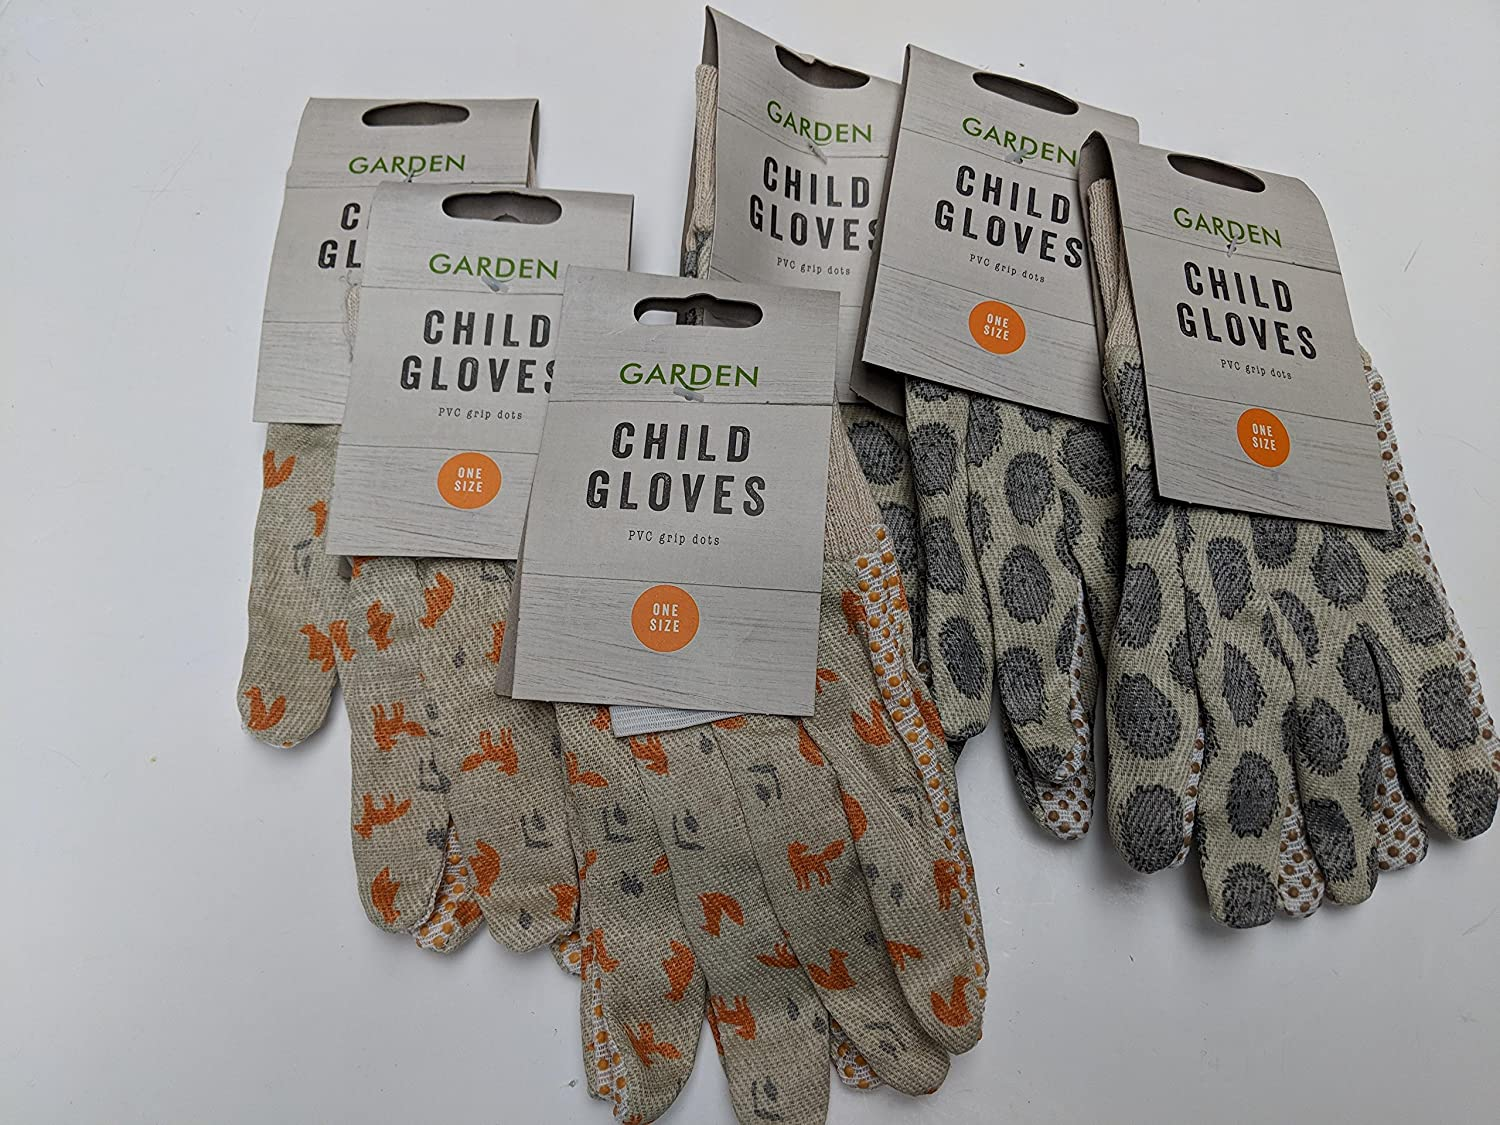 6 x Childrens Garden Gardening Gloves - Hedgehog & Fox Bulk Buy School Boy Girl unbranded